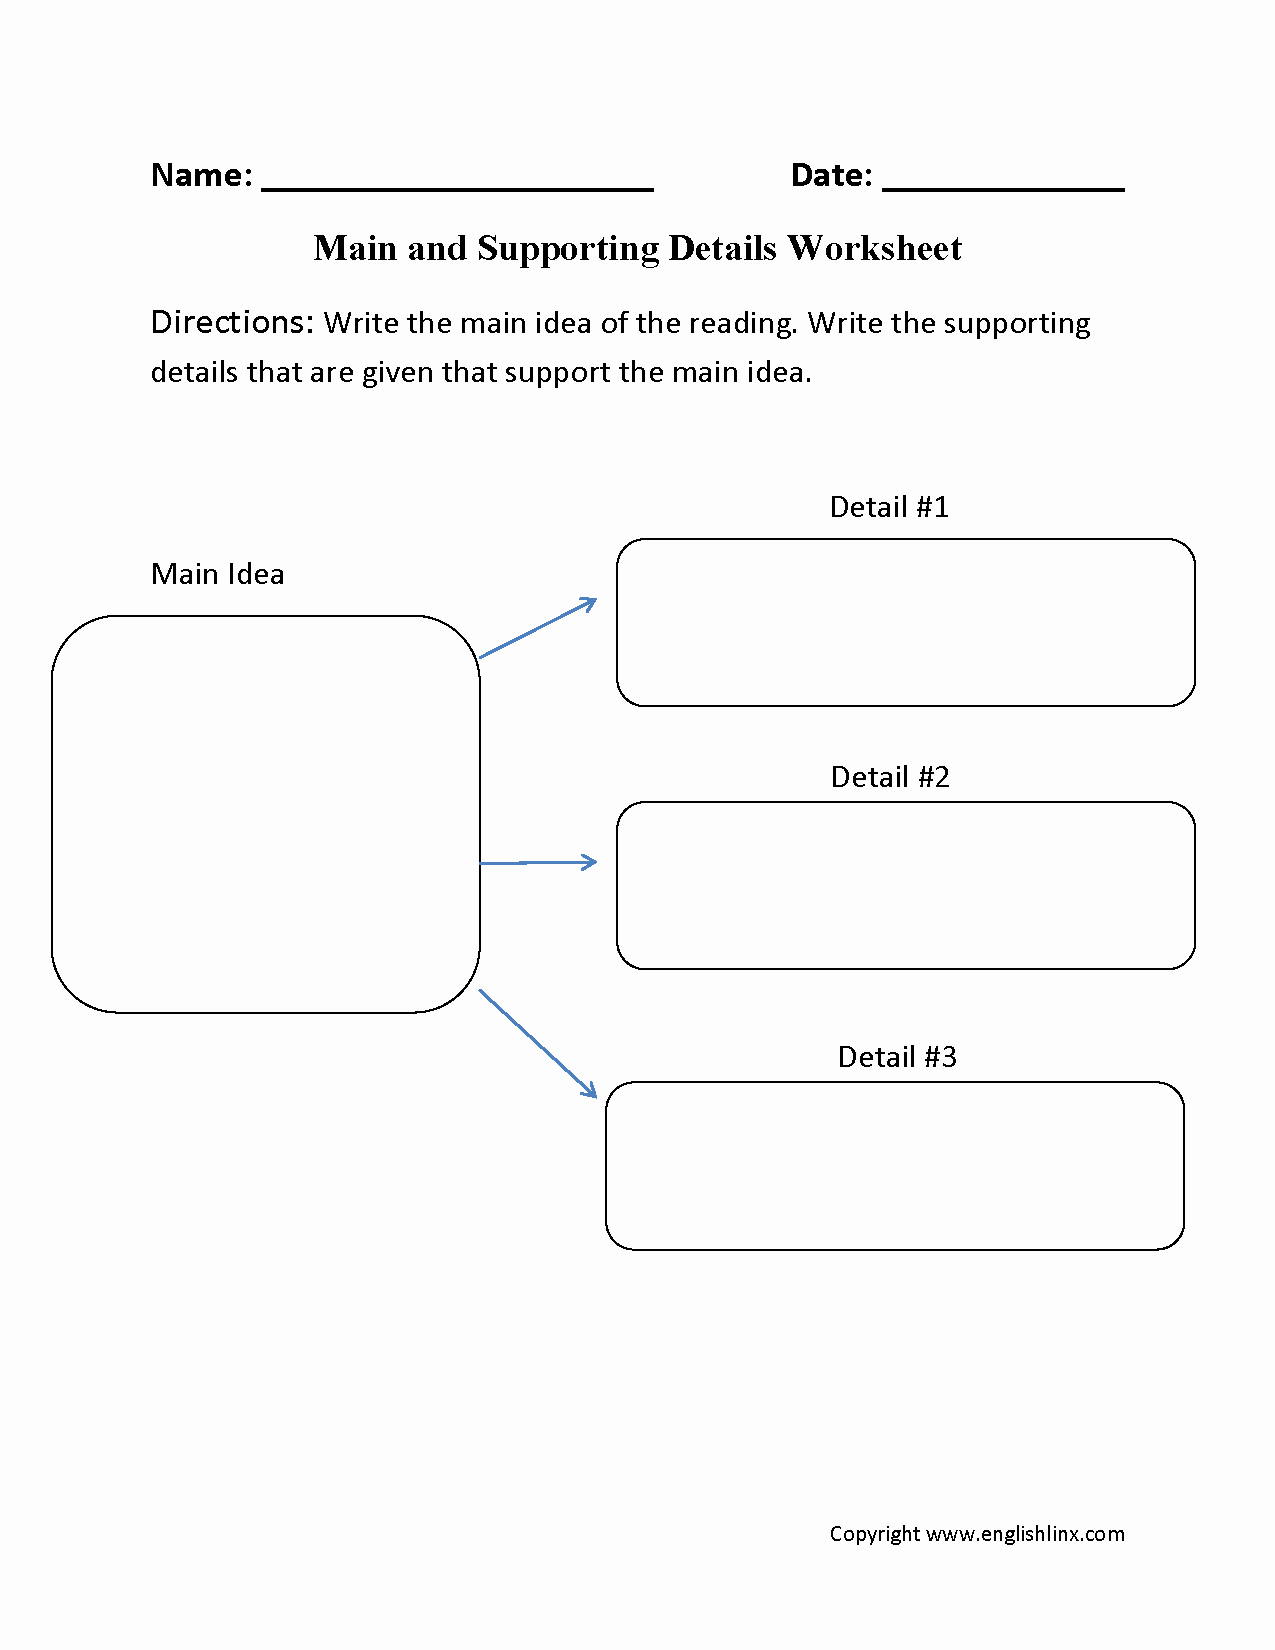 Free Printable Main Idea Worksheets Best Of 29 Prehensive Main Idea Worksheets